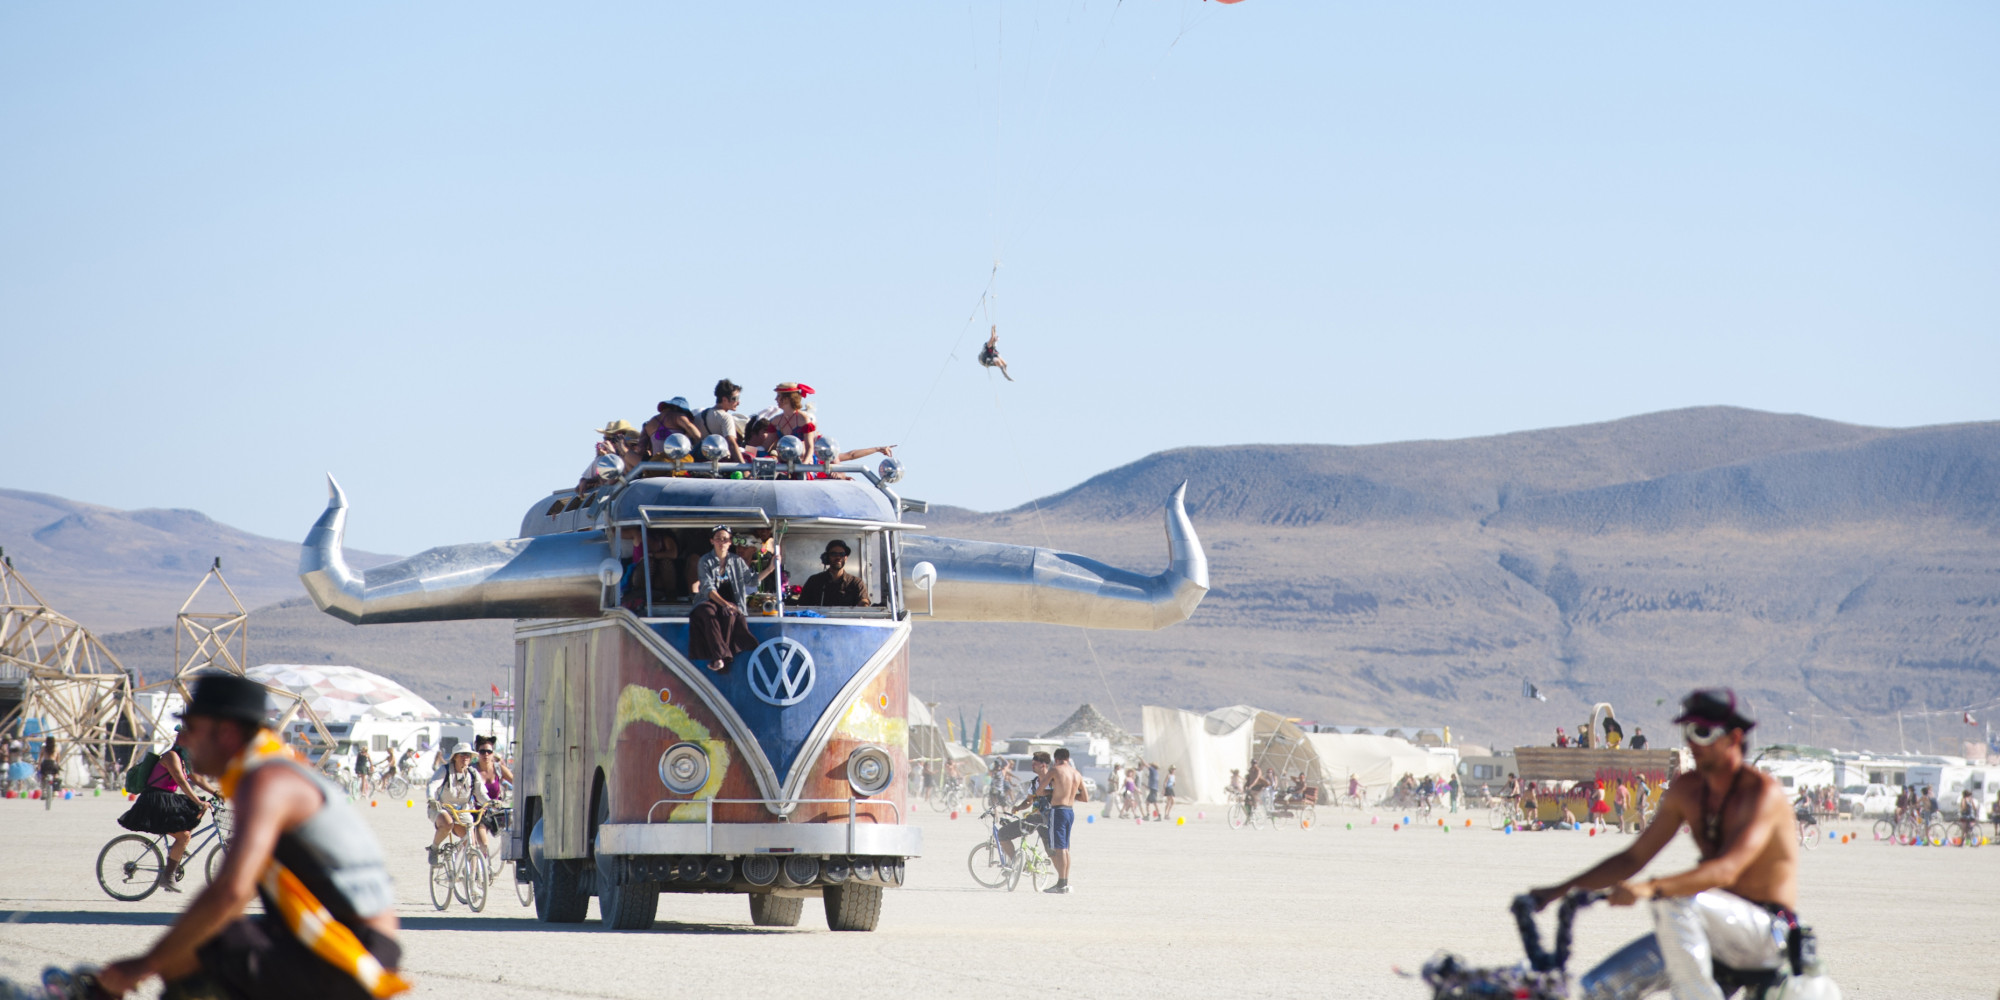 Oversize VW Van Art Car Photo: Huffingtonpost